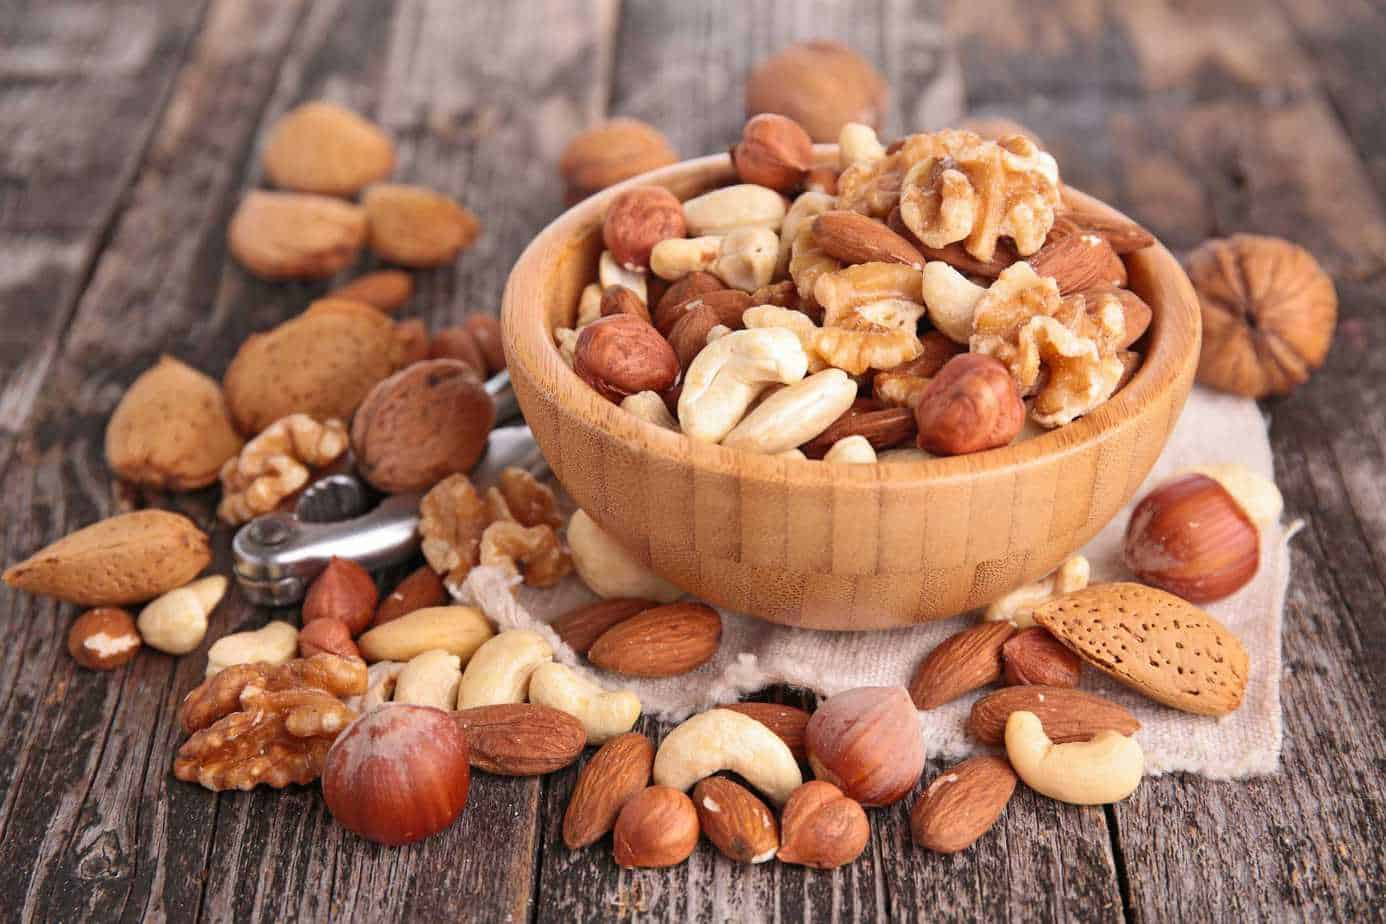 Snacks for Muscle Building - Nuts Snacks